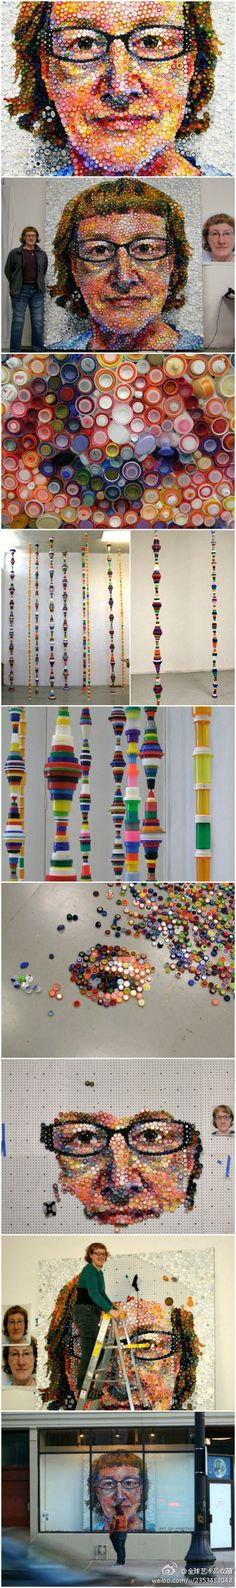 """Created by layered tones/values of color! Tupperware set inside each other. Great use of """"found objects""""! i love this piece - reminded me of chuck close. Chuck Close, Plastic Art, Plastic Bottle, Recycling, Recycled Art Projects, Bottle Cap Art, Collaborative Art, Art Club, Art Plastique"""